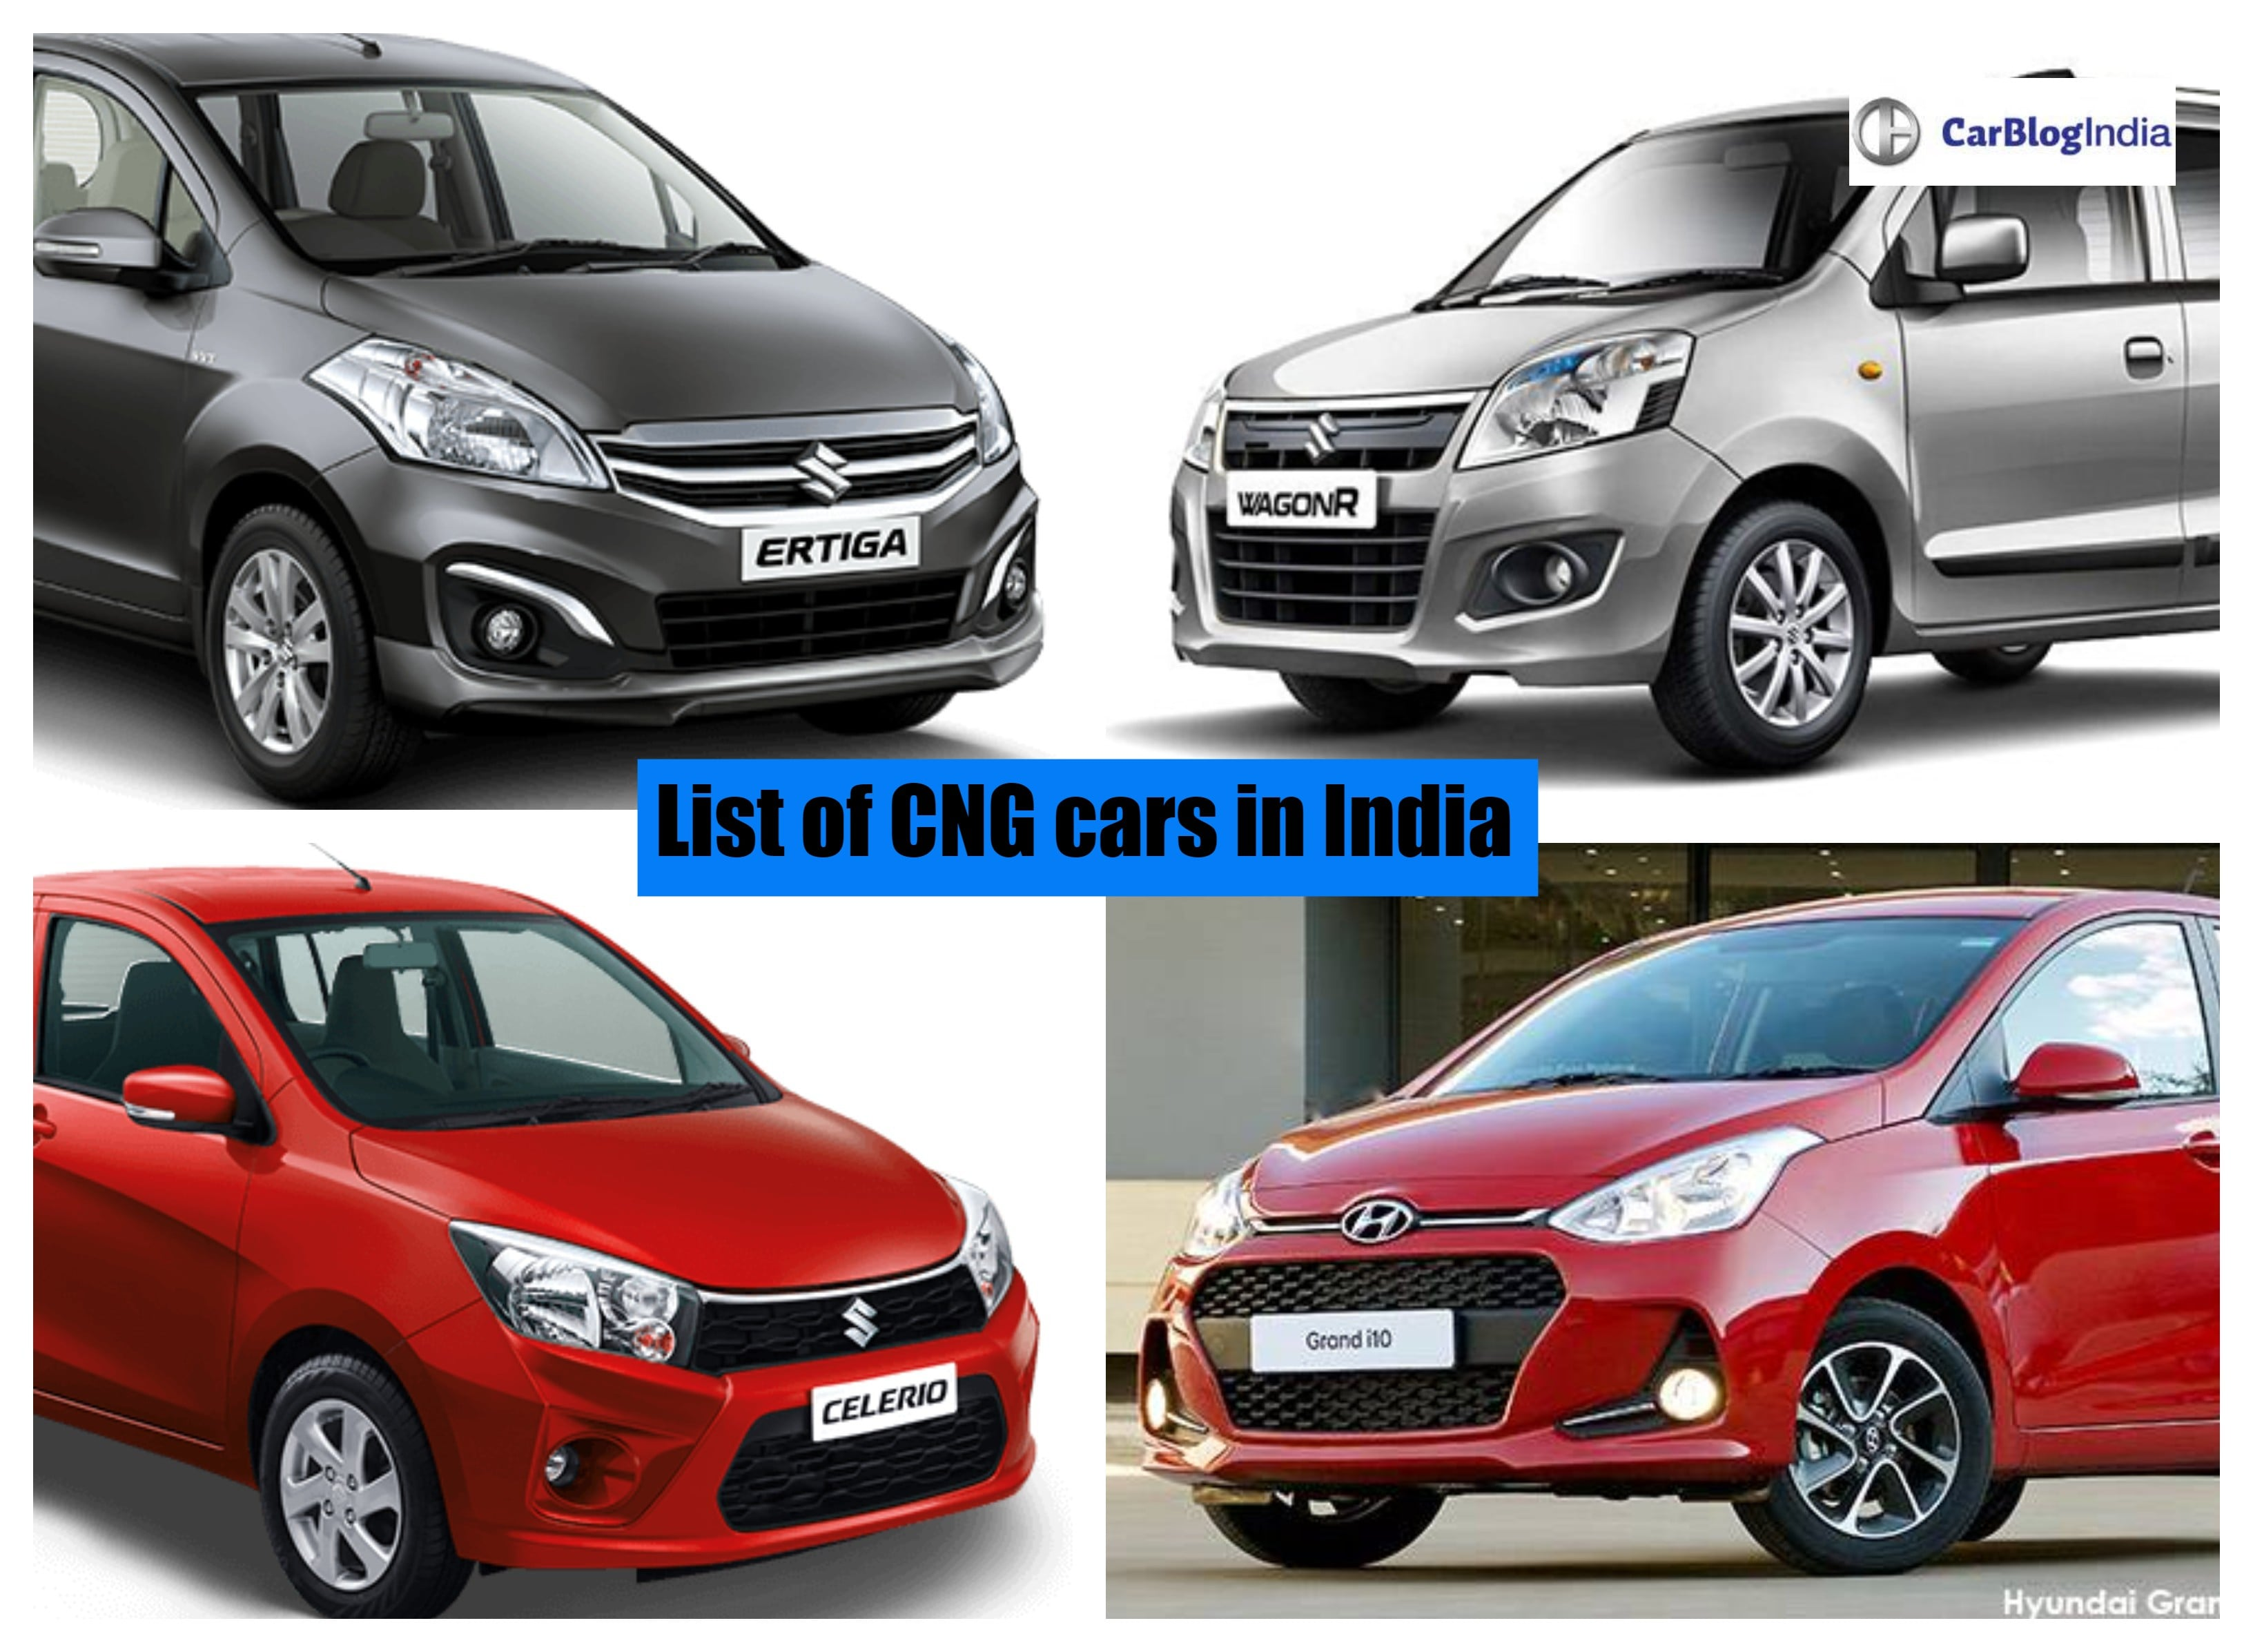 List of factory fitted CNG cars in India - Maruti Suzuki